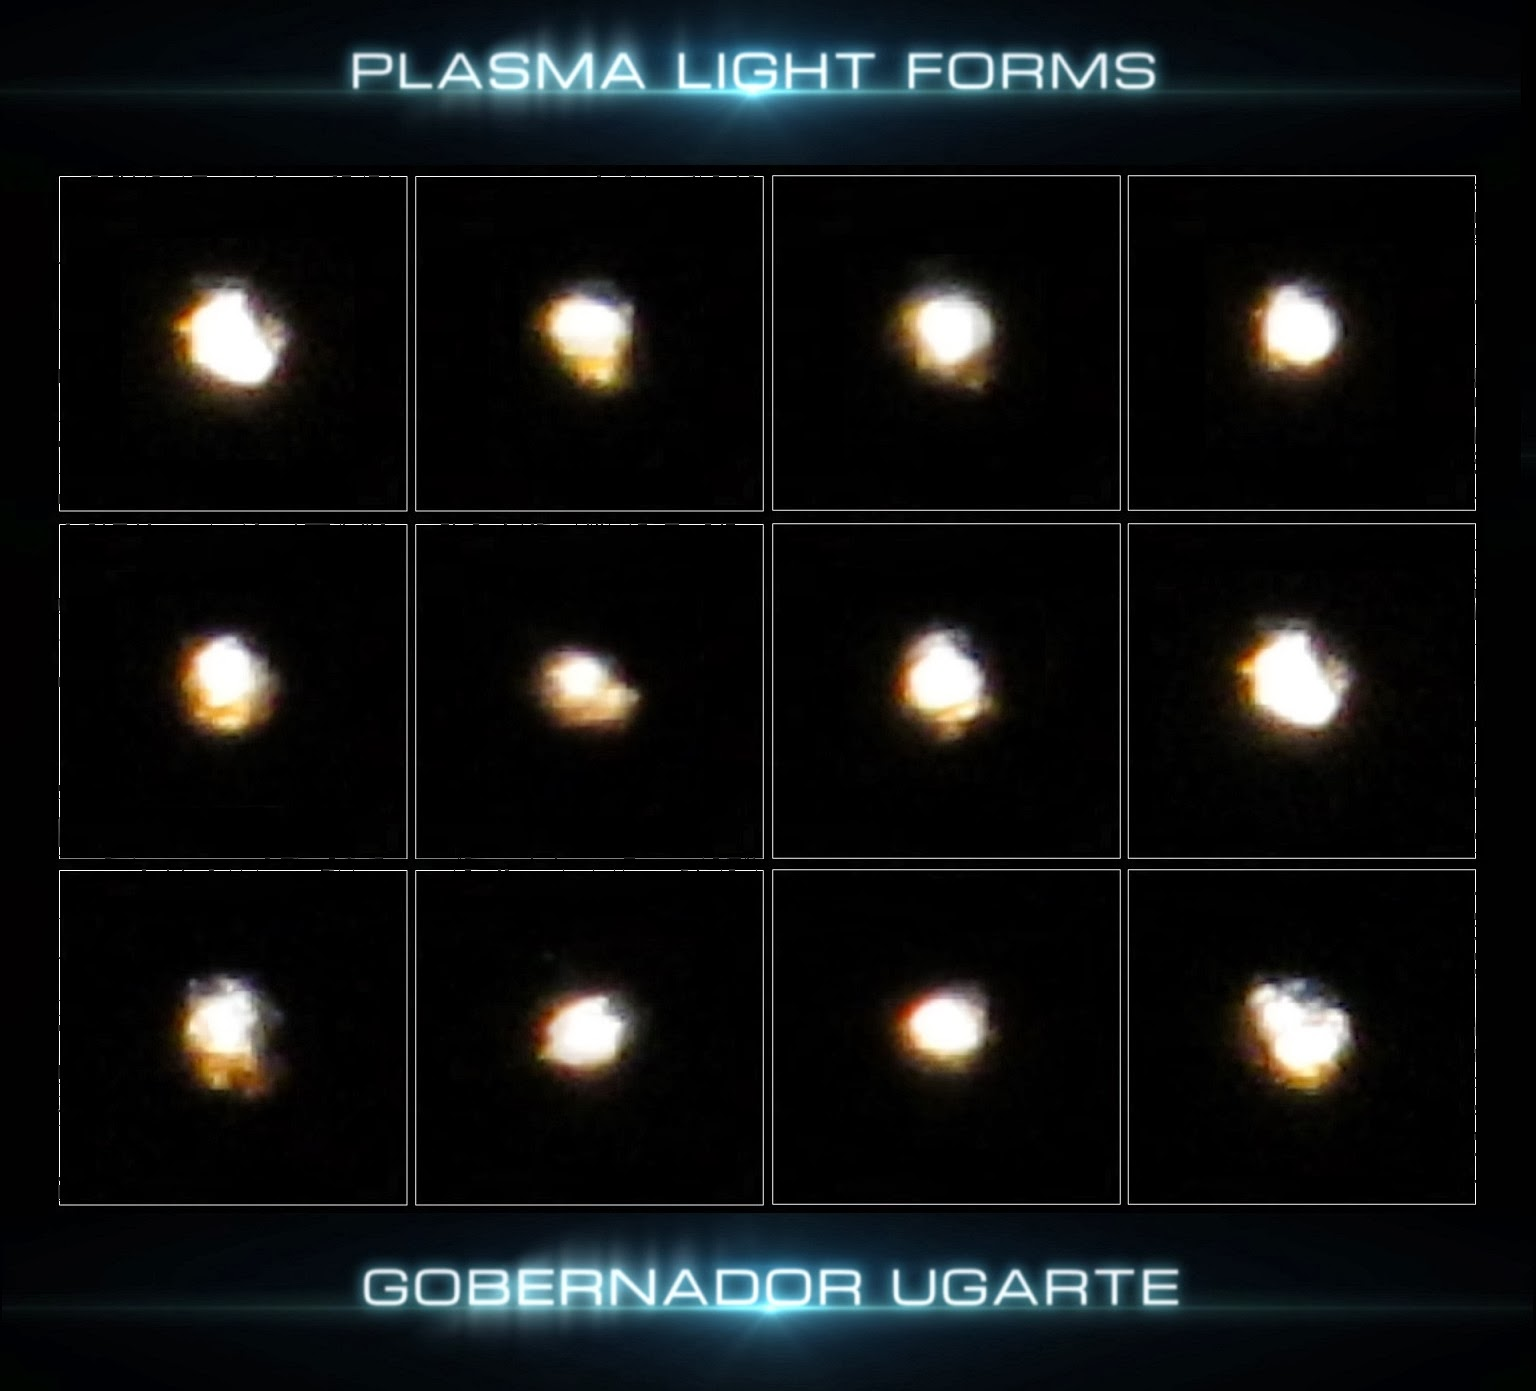 PLASMA LIGHT FORMS